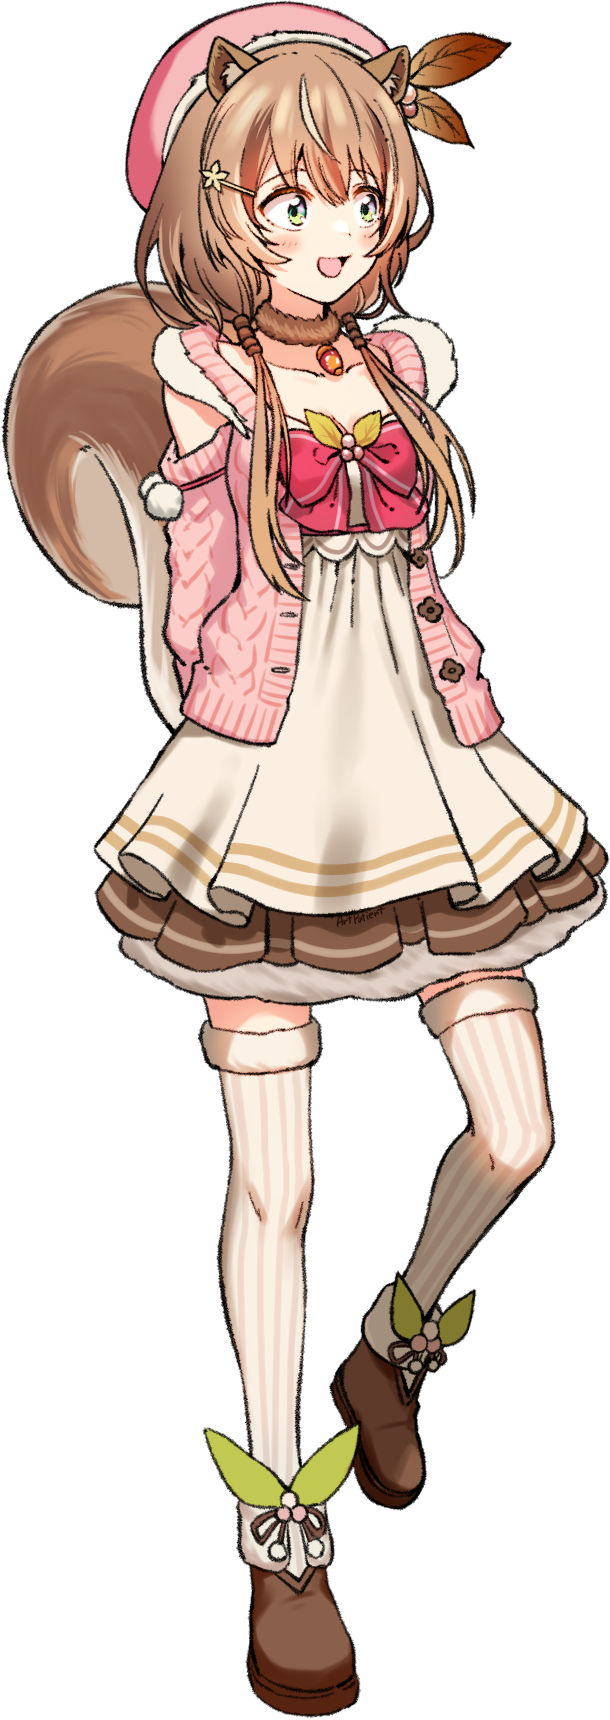 1girl :d animal_ears arms_behind_back artpatient ayunda_risu beret blush boots brown_footwear brown_hair cable_knit clothing_cutout dress full_body fur-trimmed_boots fur-trimmed_legwear fur_choker fur_trim green_eyes hat highres hololive hololive_indonesia layered_dress leg_up looking_away open_mouth pink_sweater short_dress short_hair shoulder_cutout simple_background smile solo squirrel_ears squirrel_girl squirrel_tail sweater tail thigh-highs virtual_youtuber white_background white_dress white_legwear